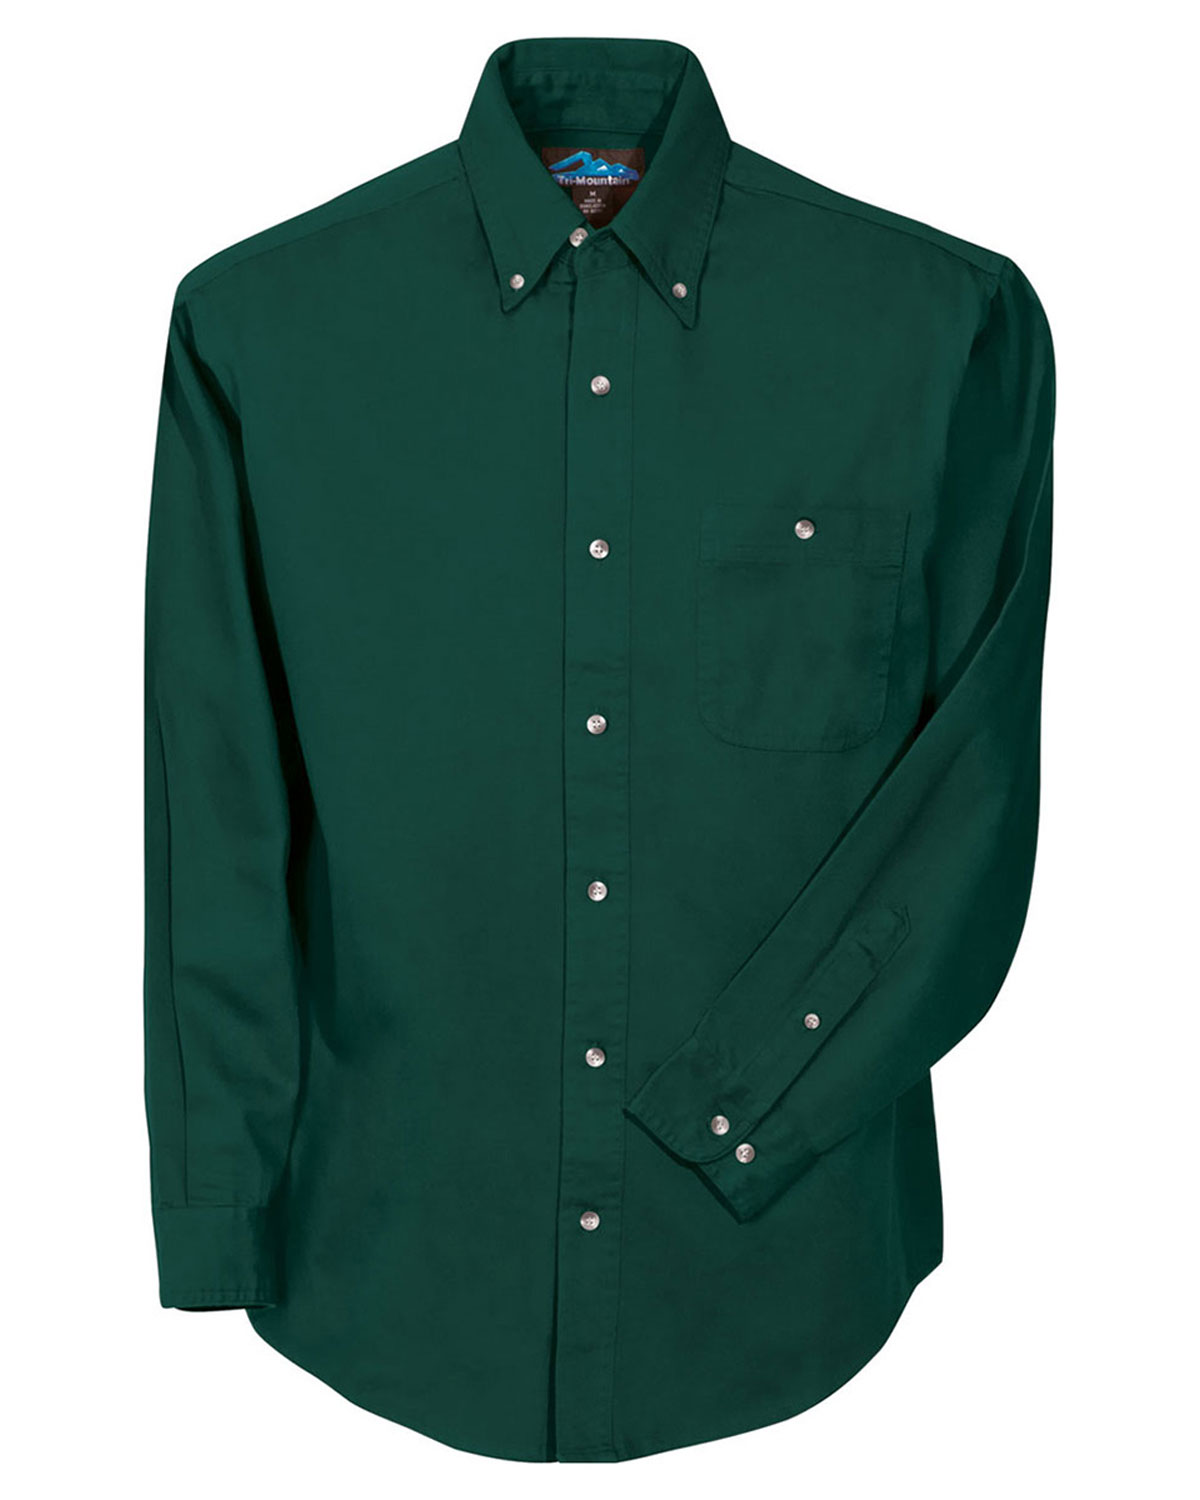 Tri Mountain Heavy Weight Cotton Twill Dress Shirt At Big